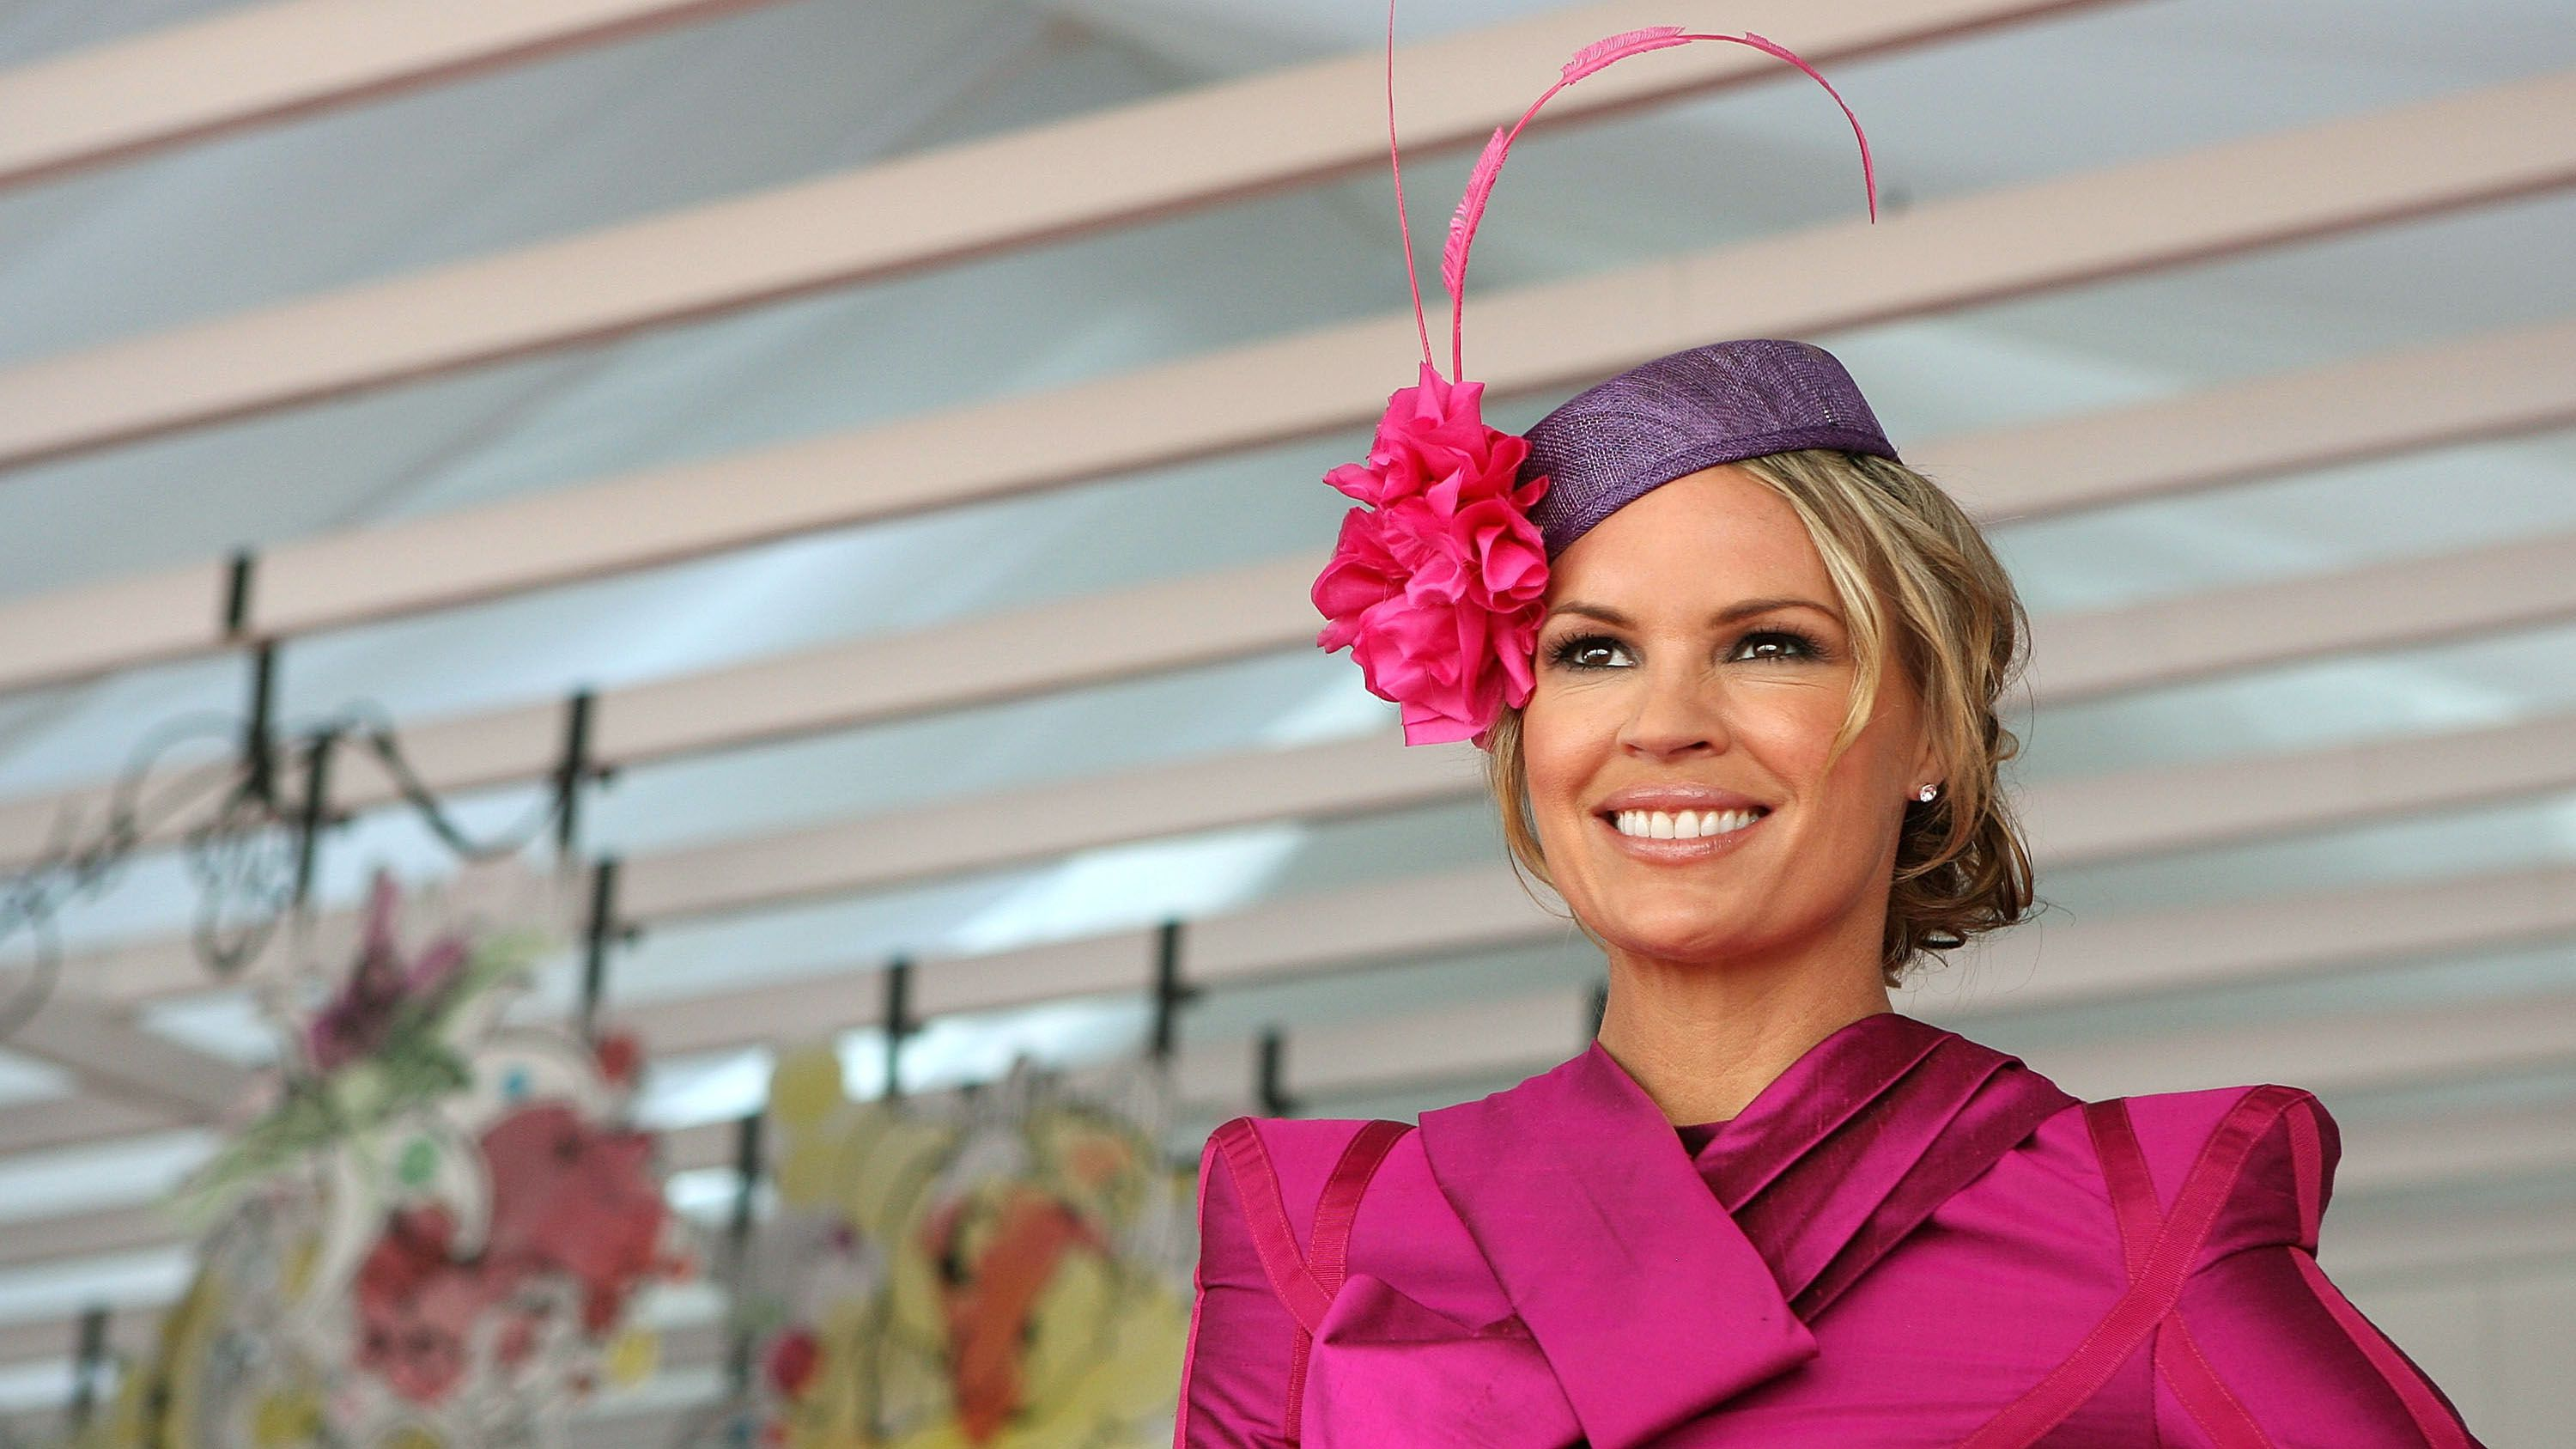 Melbourne Cup 2018 Fashion Tips, Dresses Hats - Punters 11